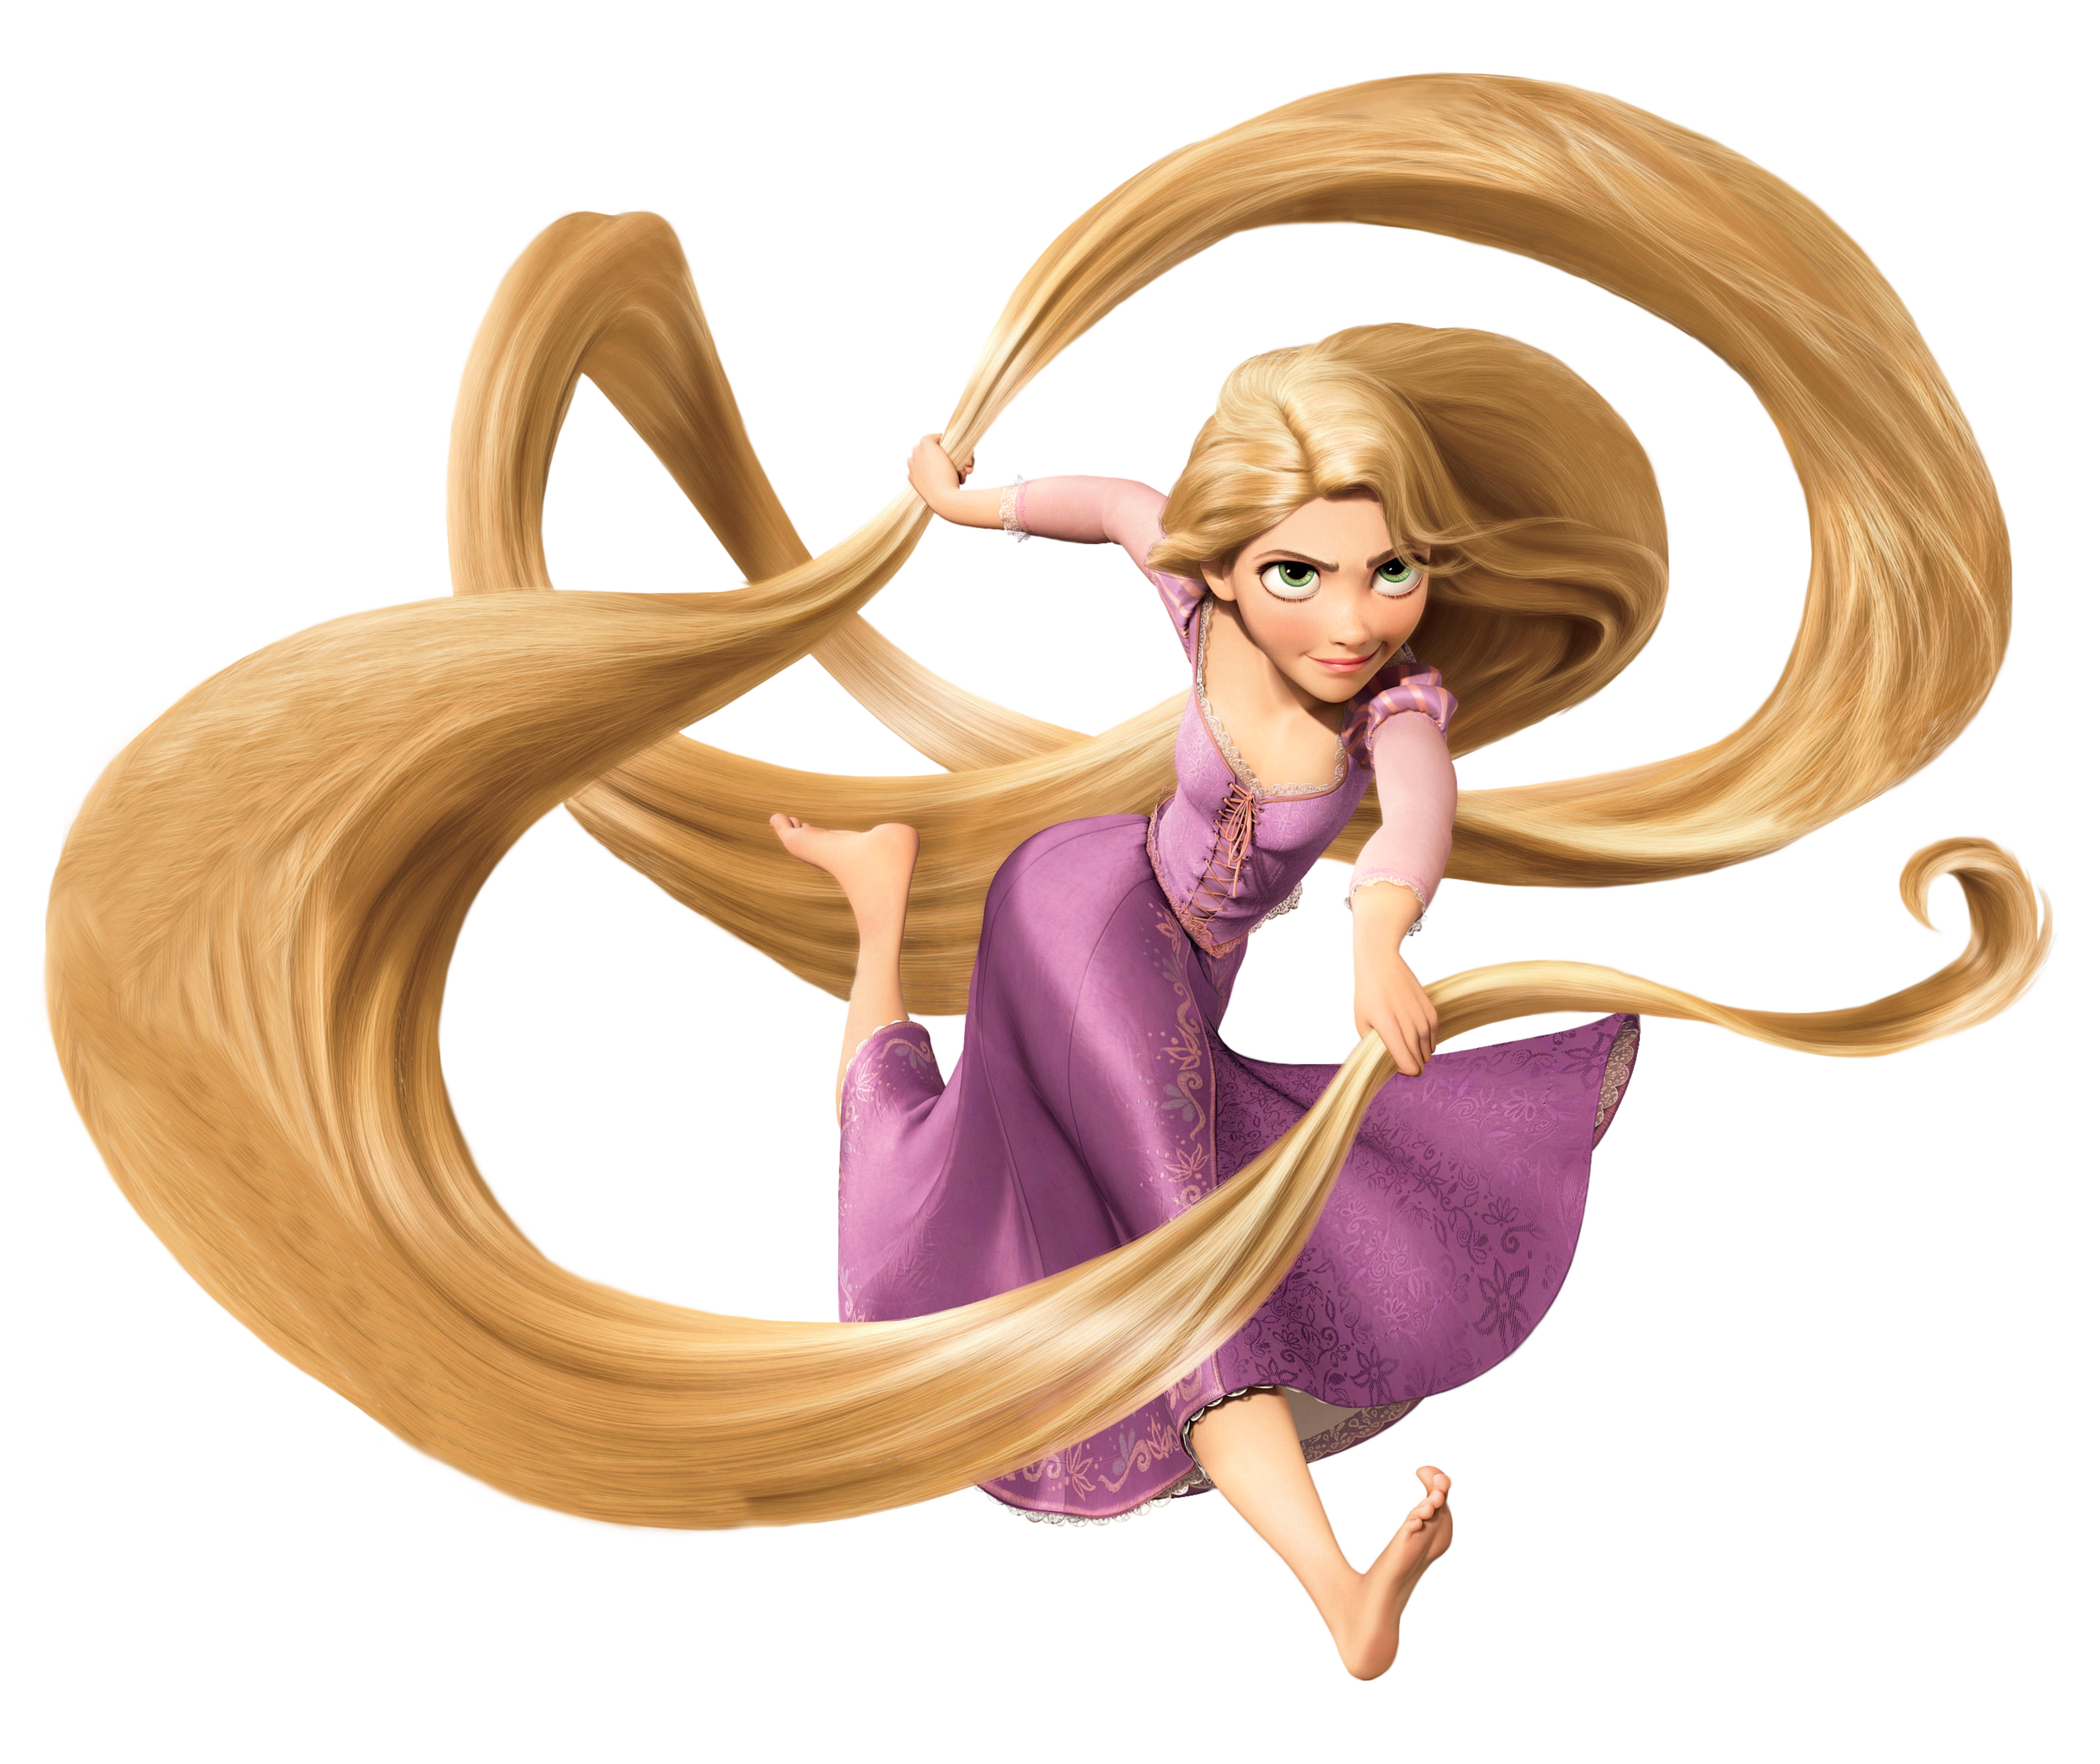 Tangled transparent. Rapunzel png clipart birthday